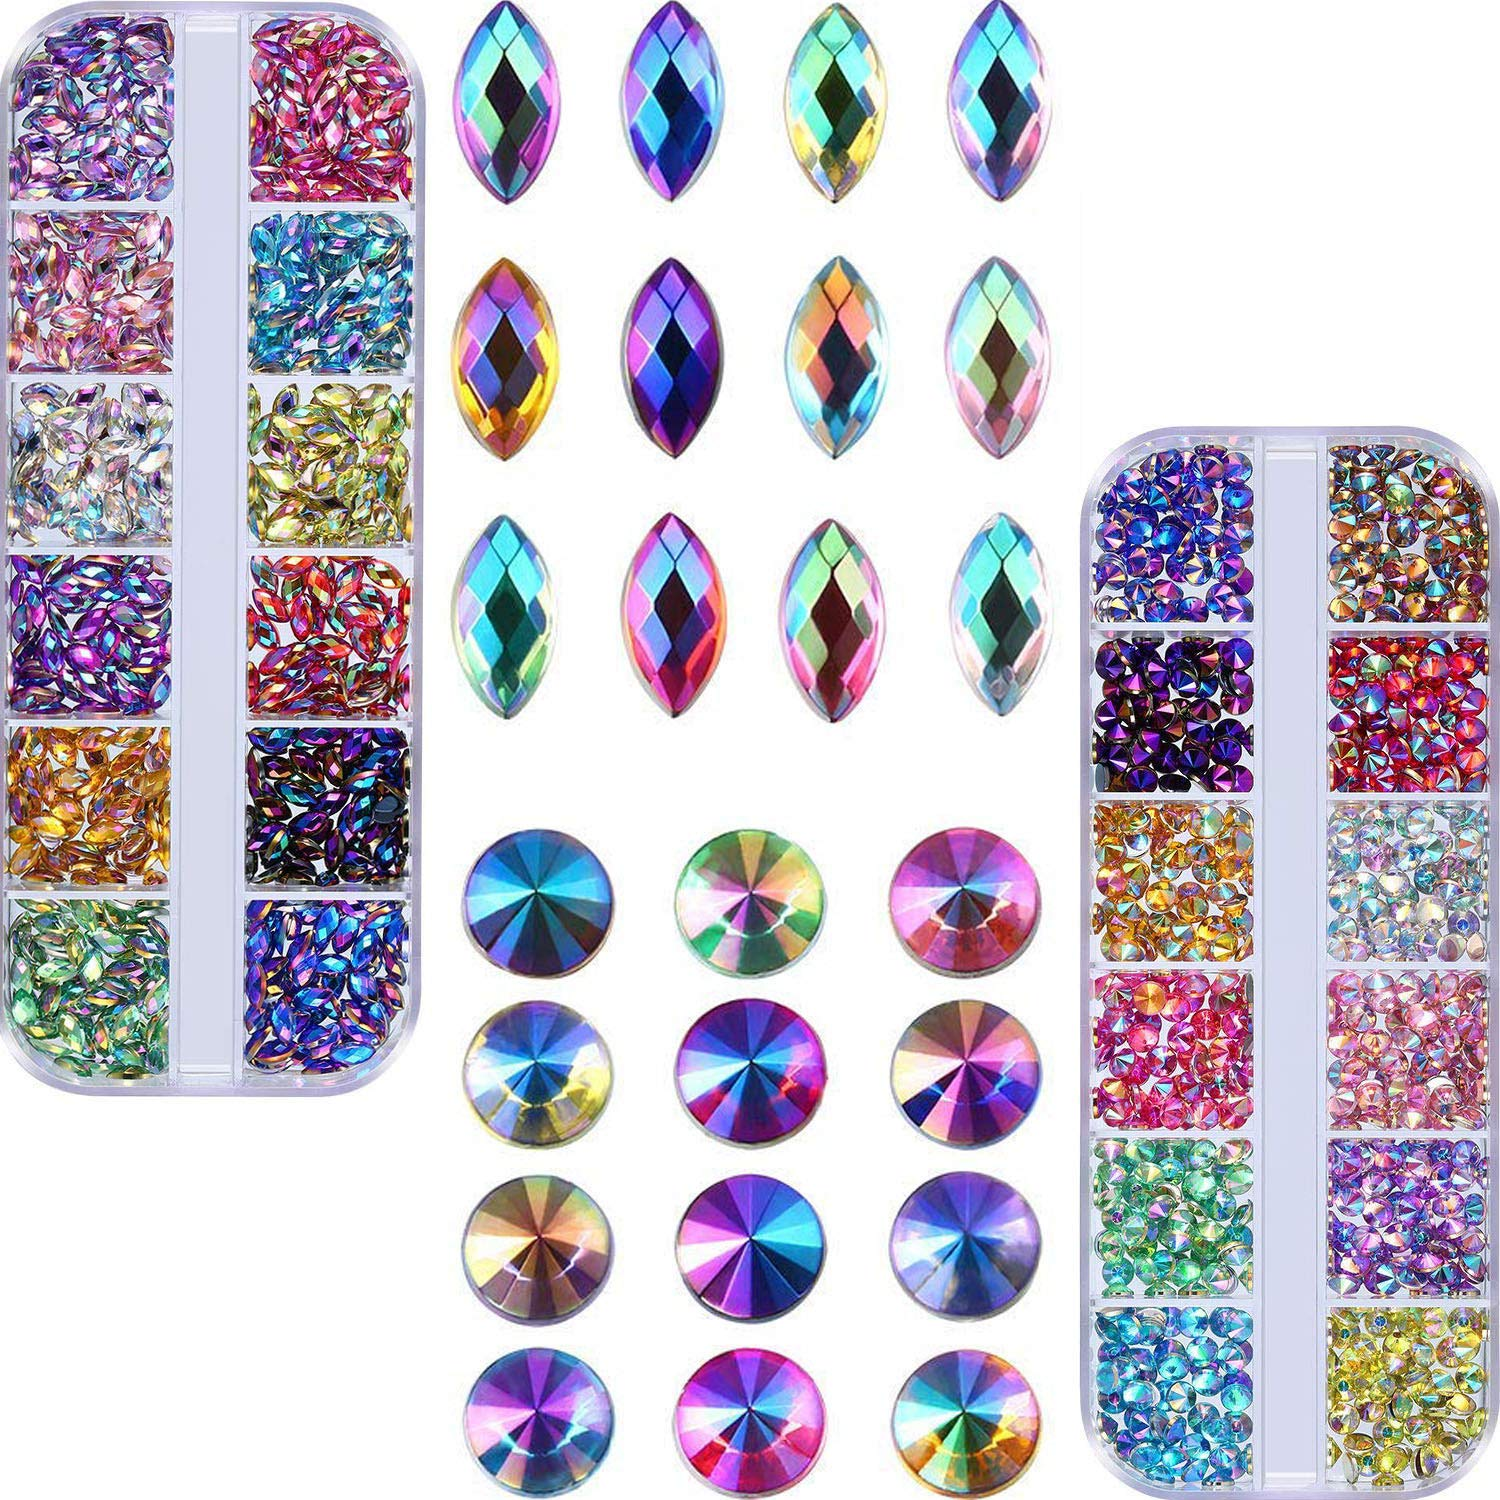 2cc30edcbd Bememo Shiny AB Nail Rhinestones Gem Stones for Nail Art Decorations  Supplies Crafts Clothes (1200 Flat...